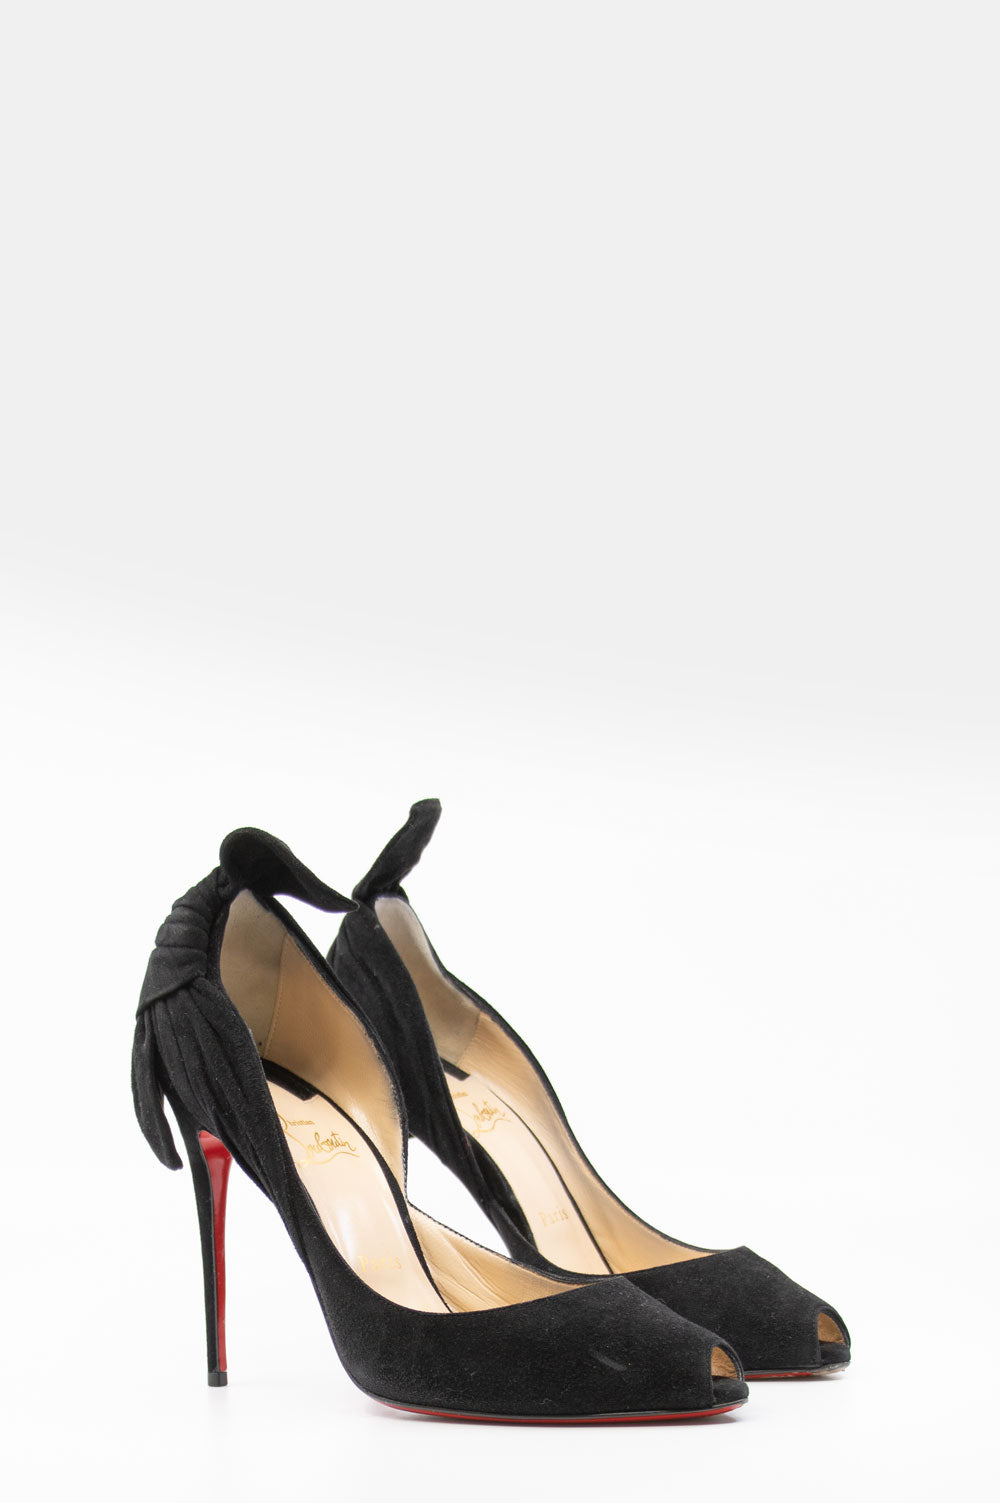 CHRISTIAN LOUBOUTIN Barbara 100 Peeptoes